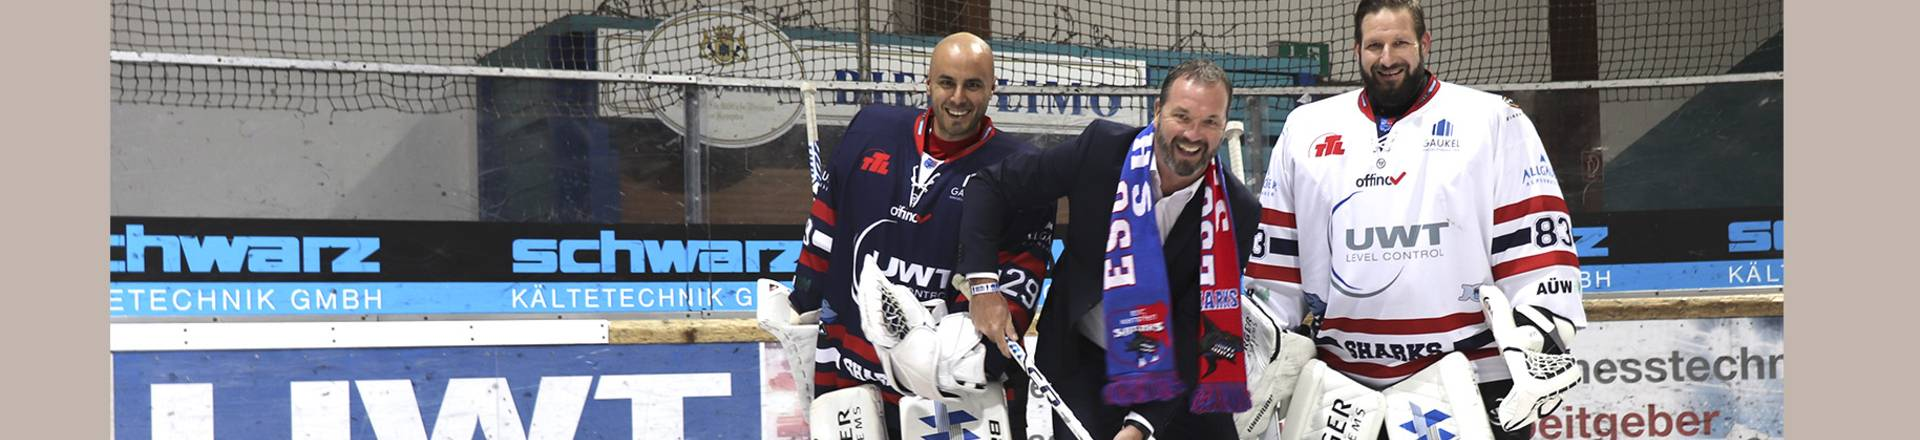 UWT is sponsoring the ice hockey club ESC in Kempten, Germany